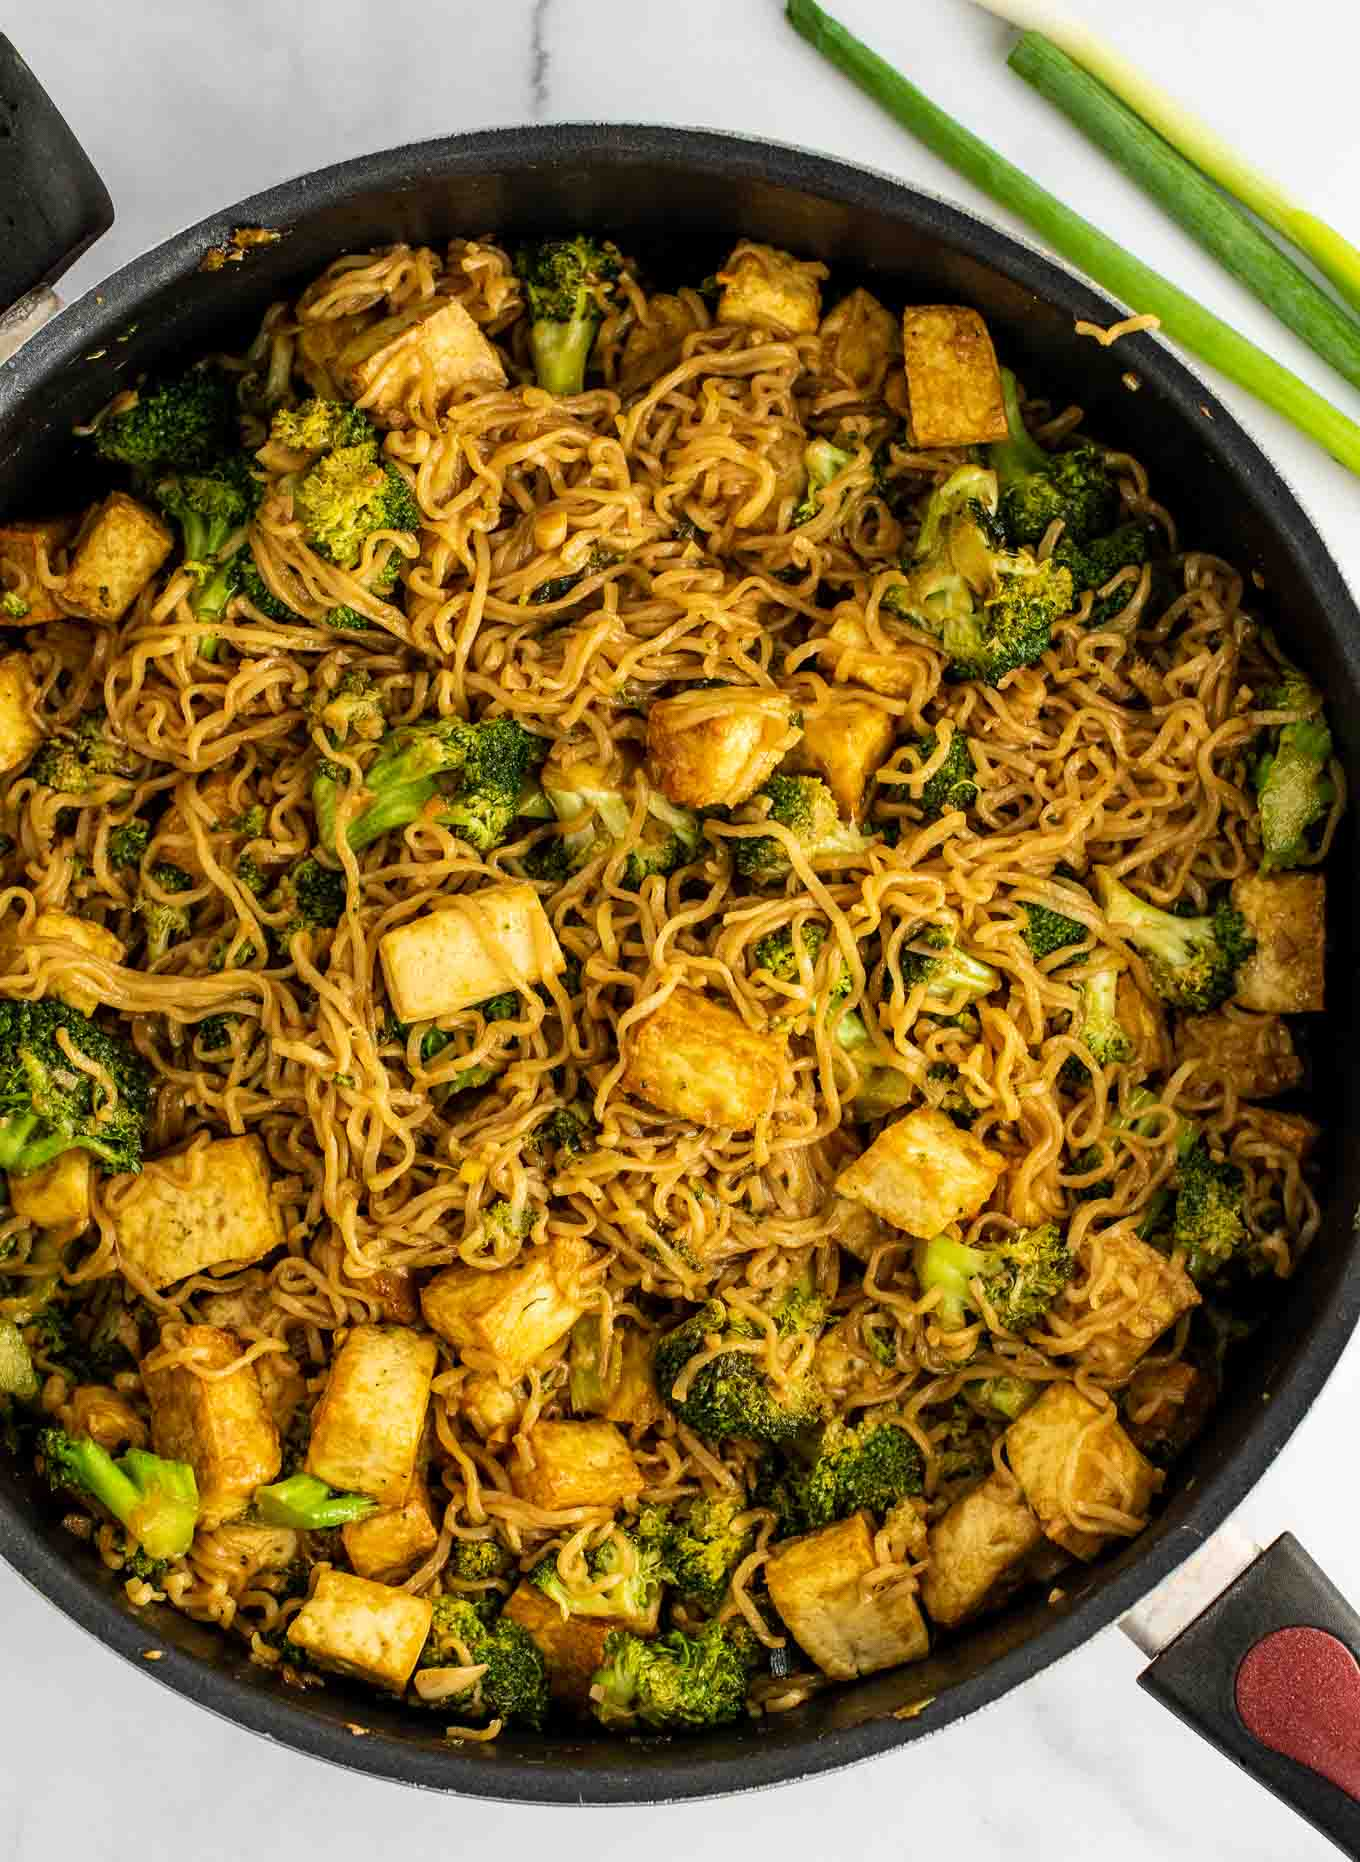 ramen noodles in a skillet with tofu and broccoli